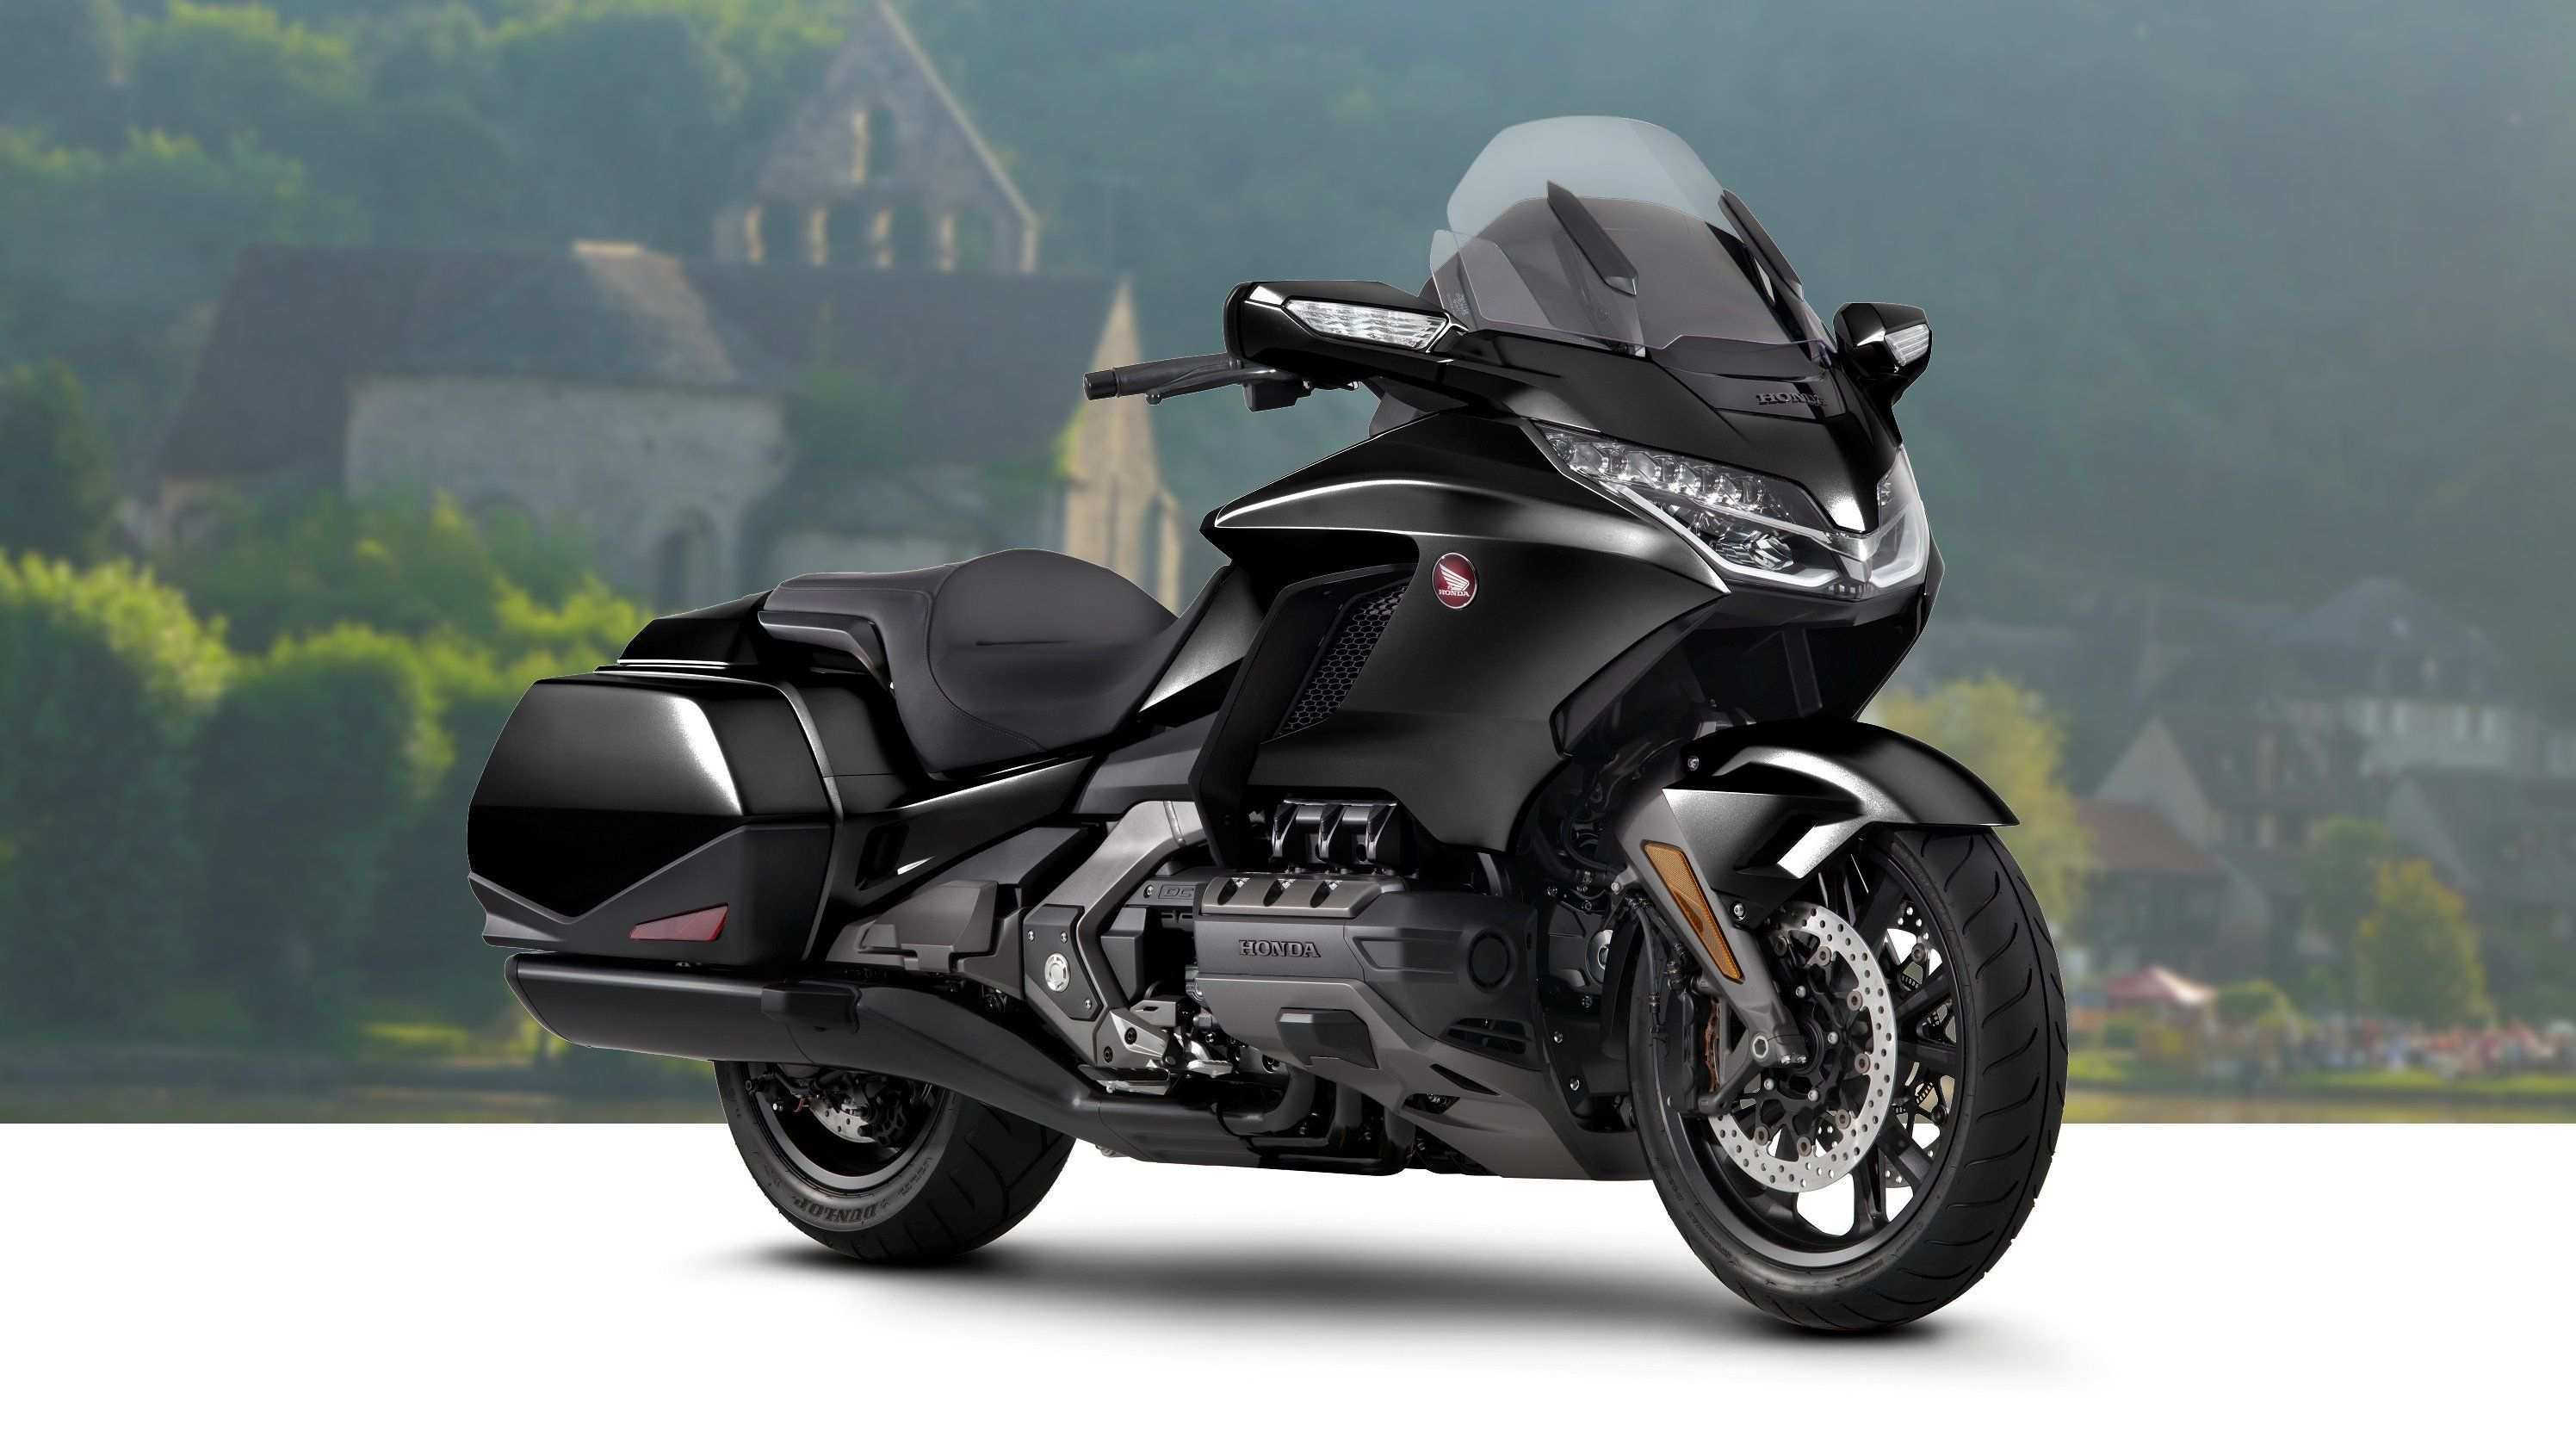 28 Best Honda Goldwing 2020 Wallpaper